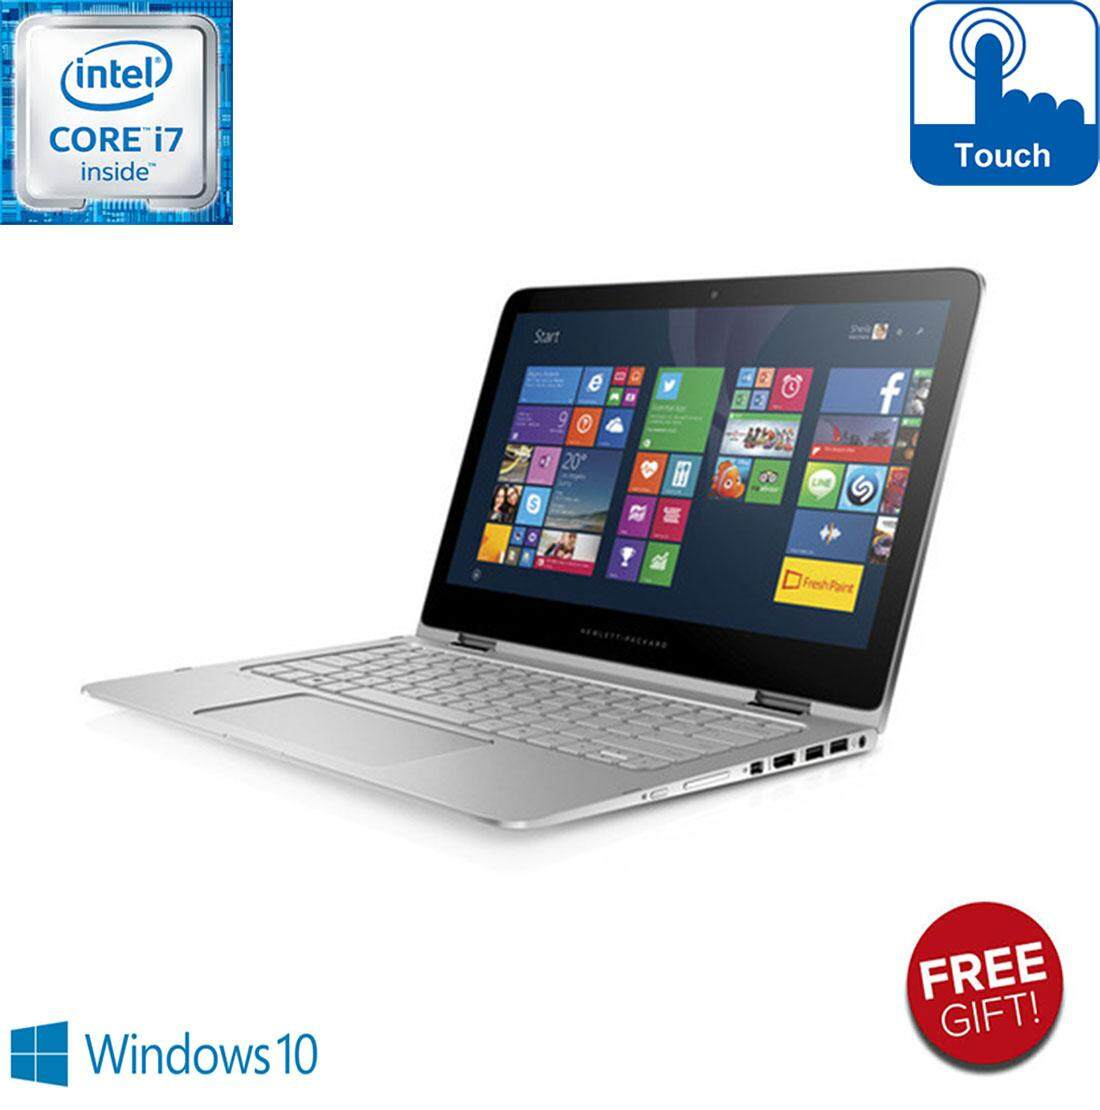 HP SPECTRE X360 2-IN-1 TOUCH SCREEN  [CORE i7 / 8GB RAM / 256GB SSD / 2K DISPLAY / FREE GIFT] / Malaysia